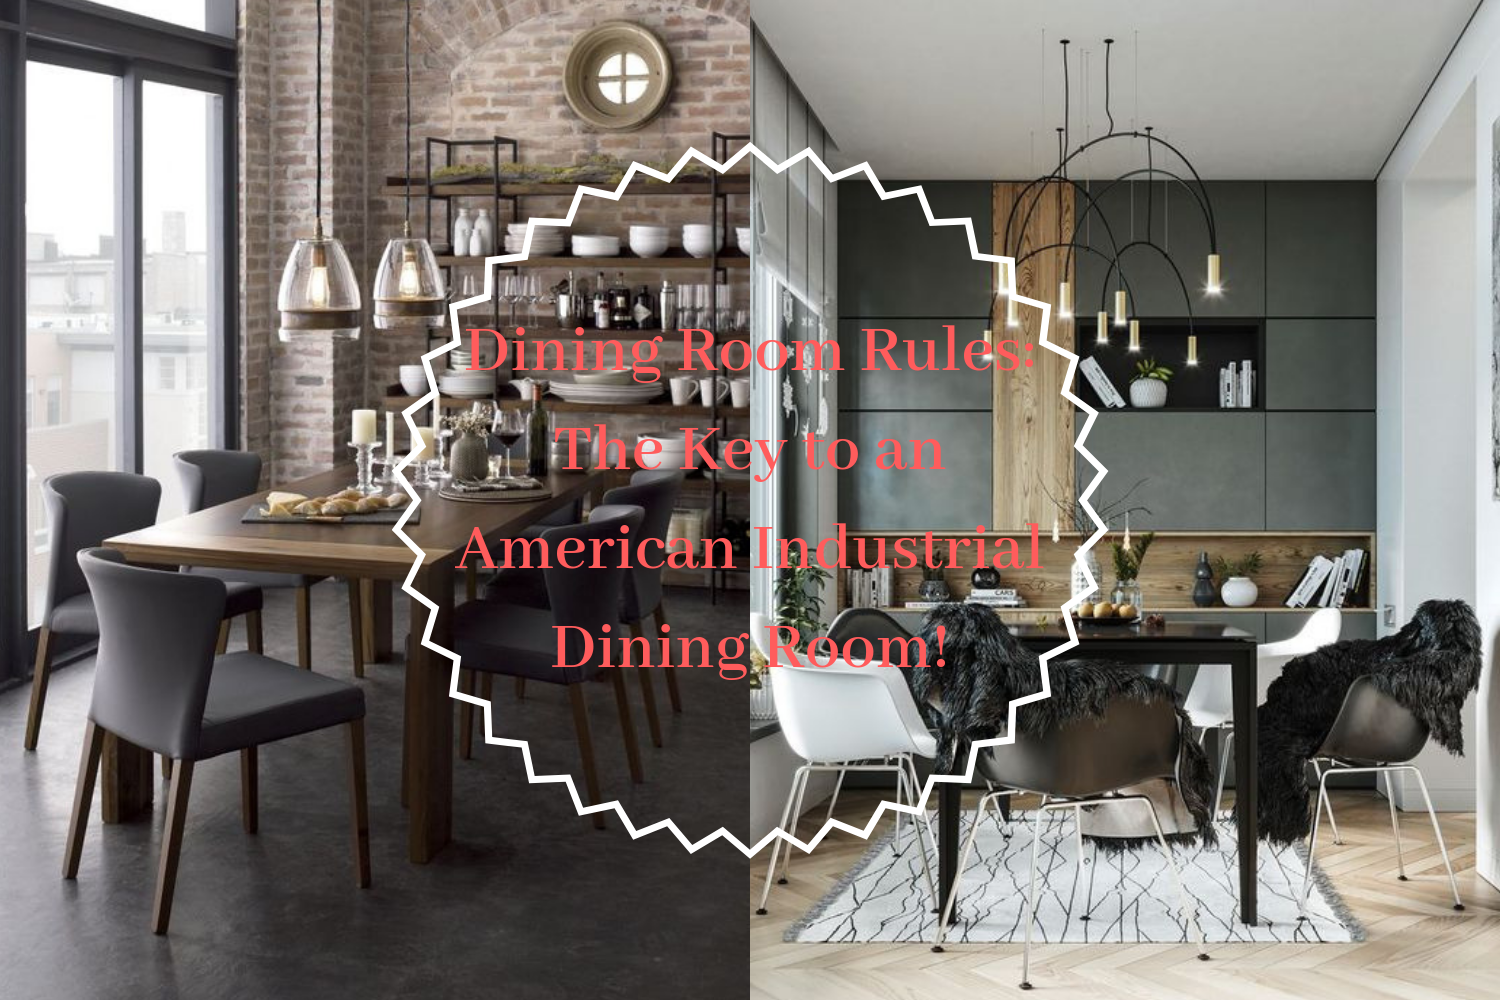 Dining Room Rules_ The Key to an American Industrial Dining Room!